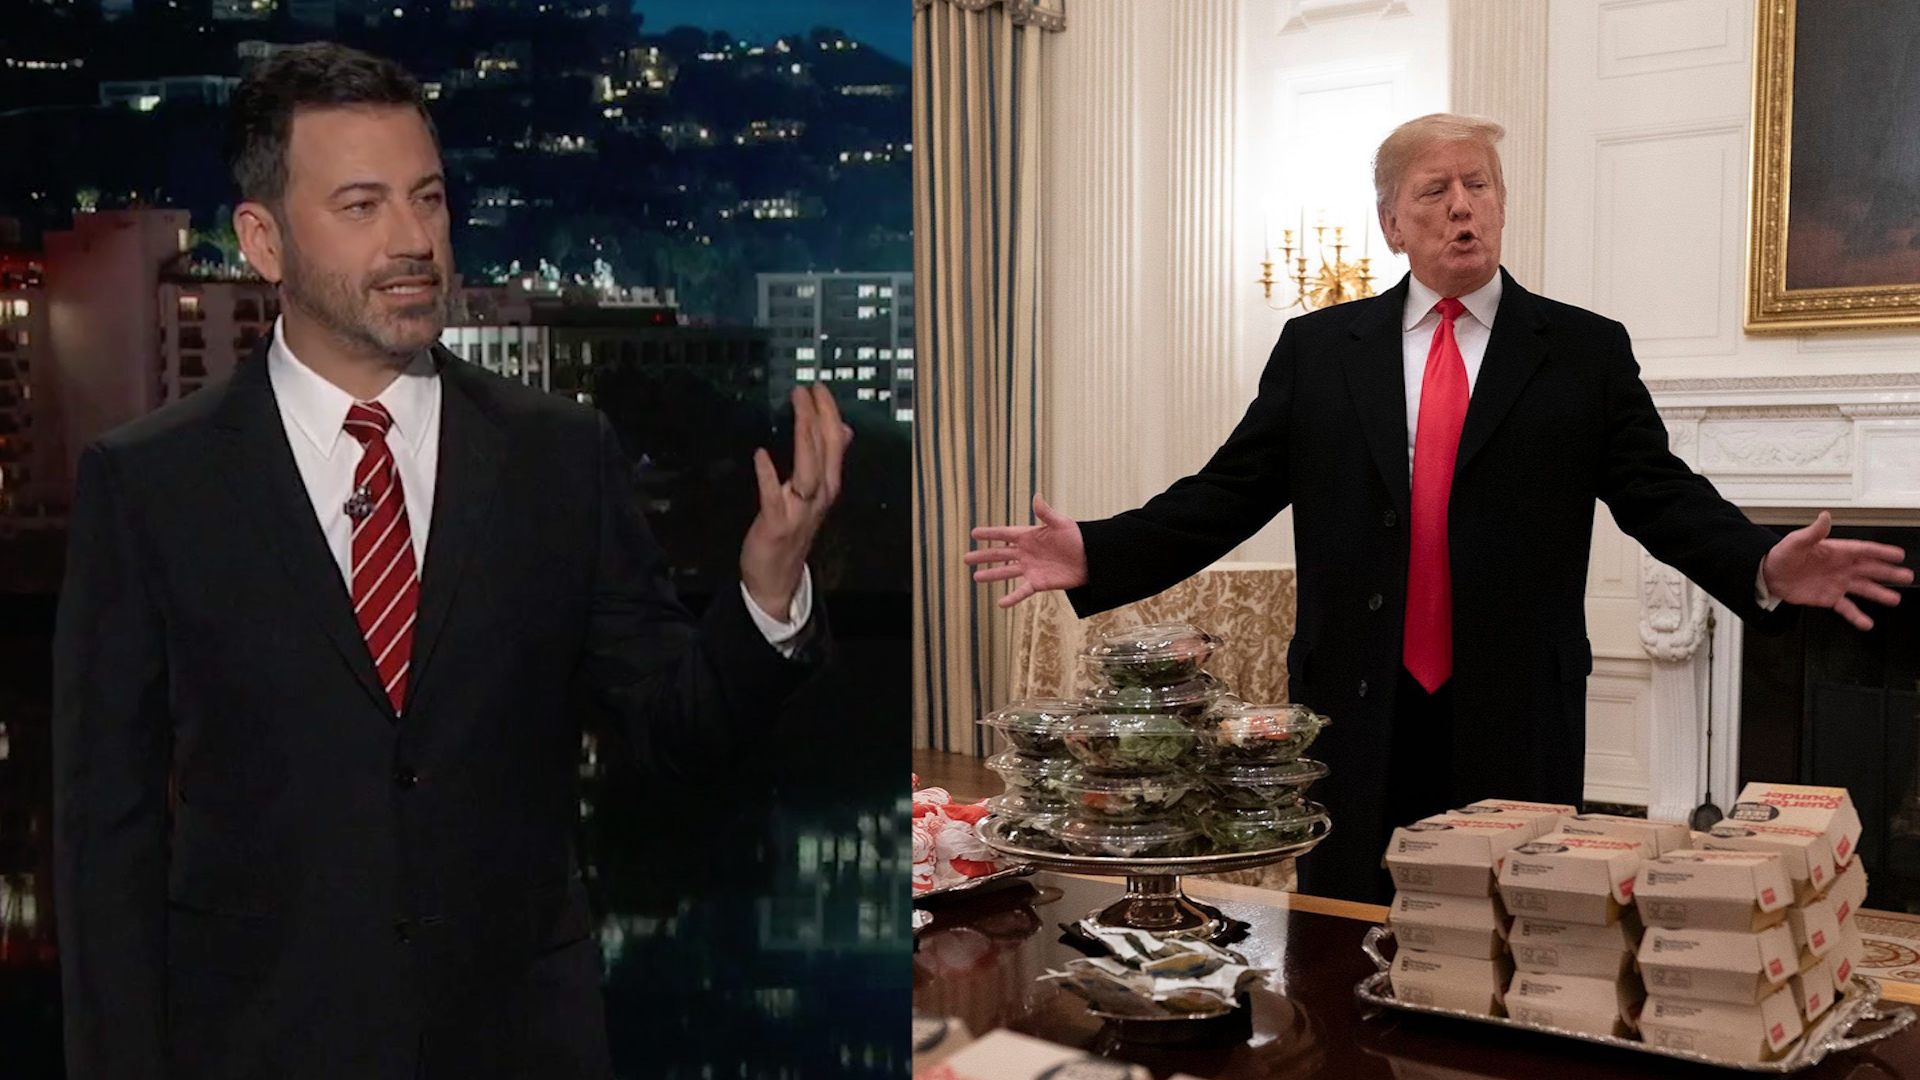 What it means that Trump served Big Macs in the State Dining Room